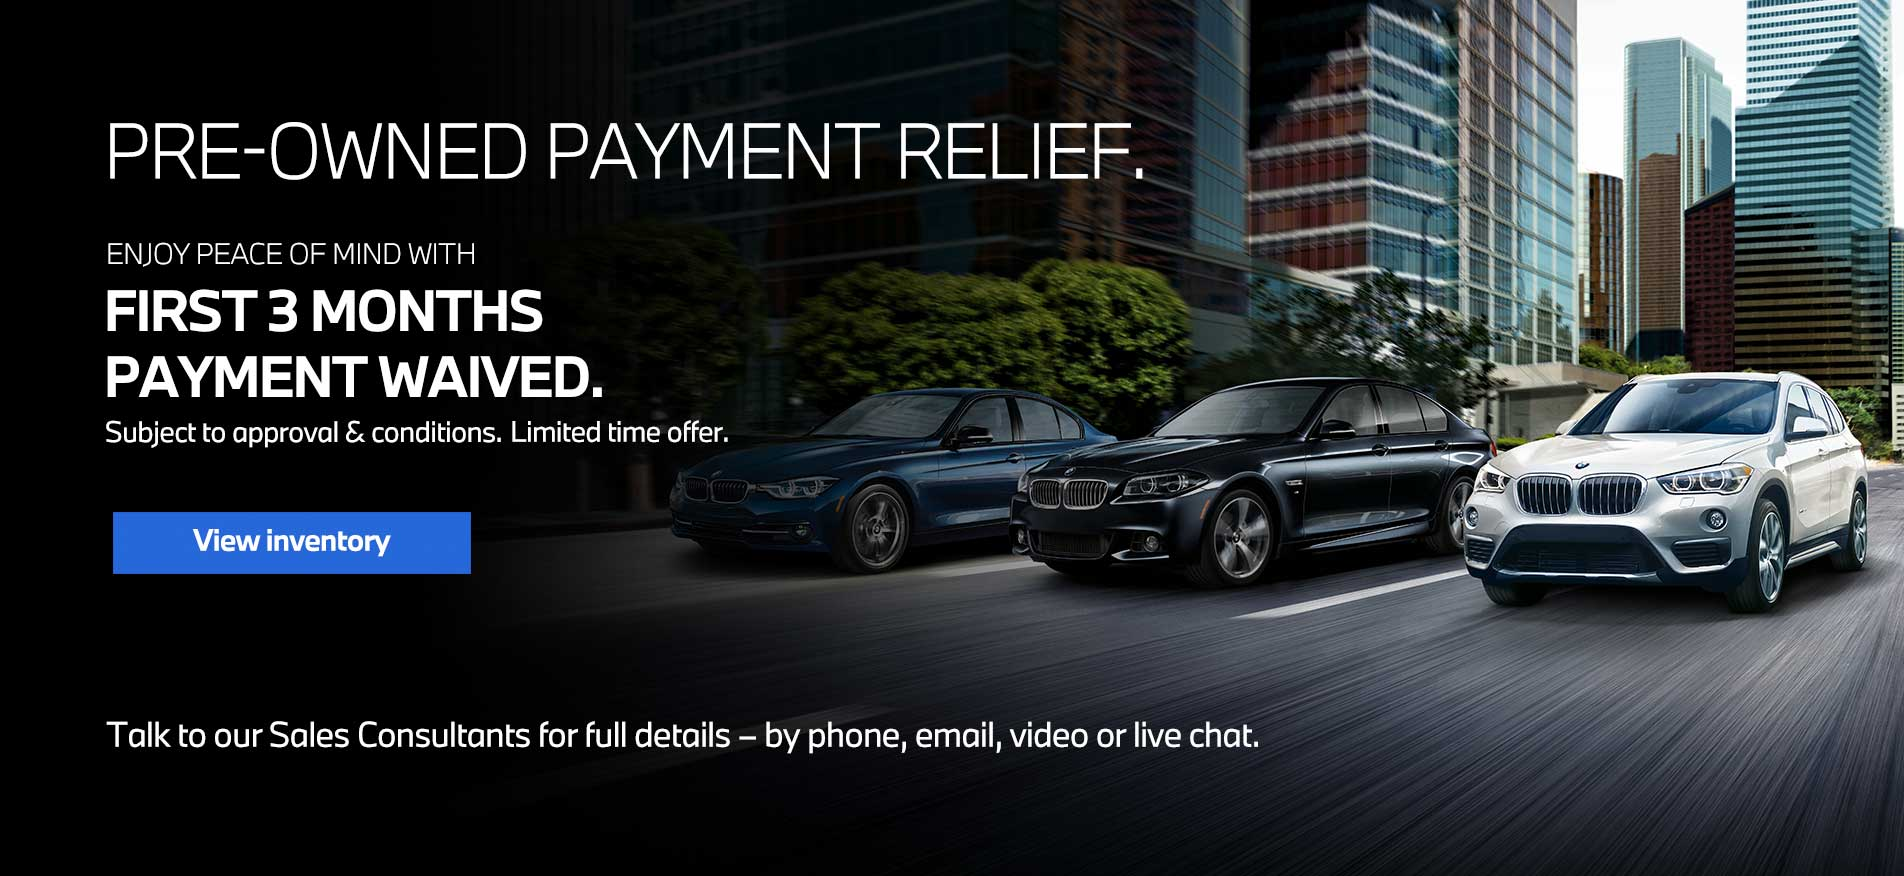 Auto West BMW Used Car Payment Relief